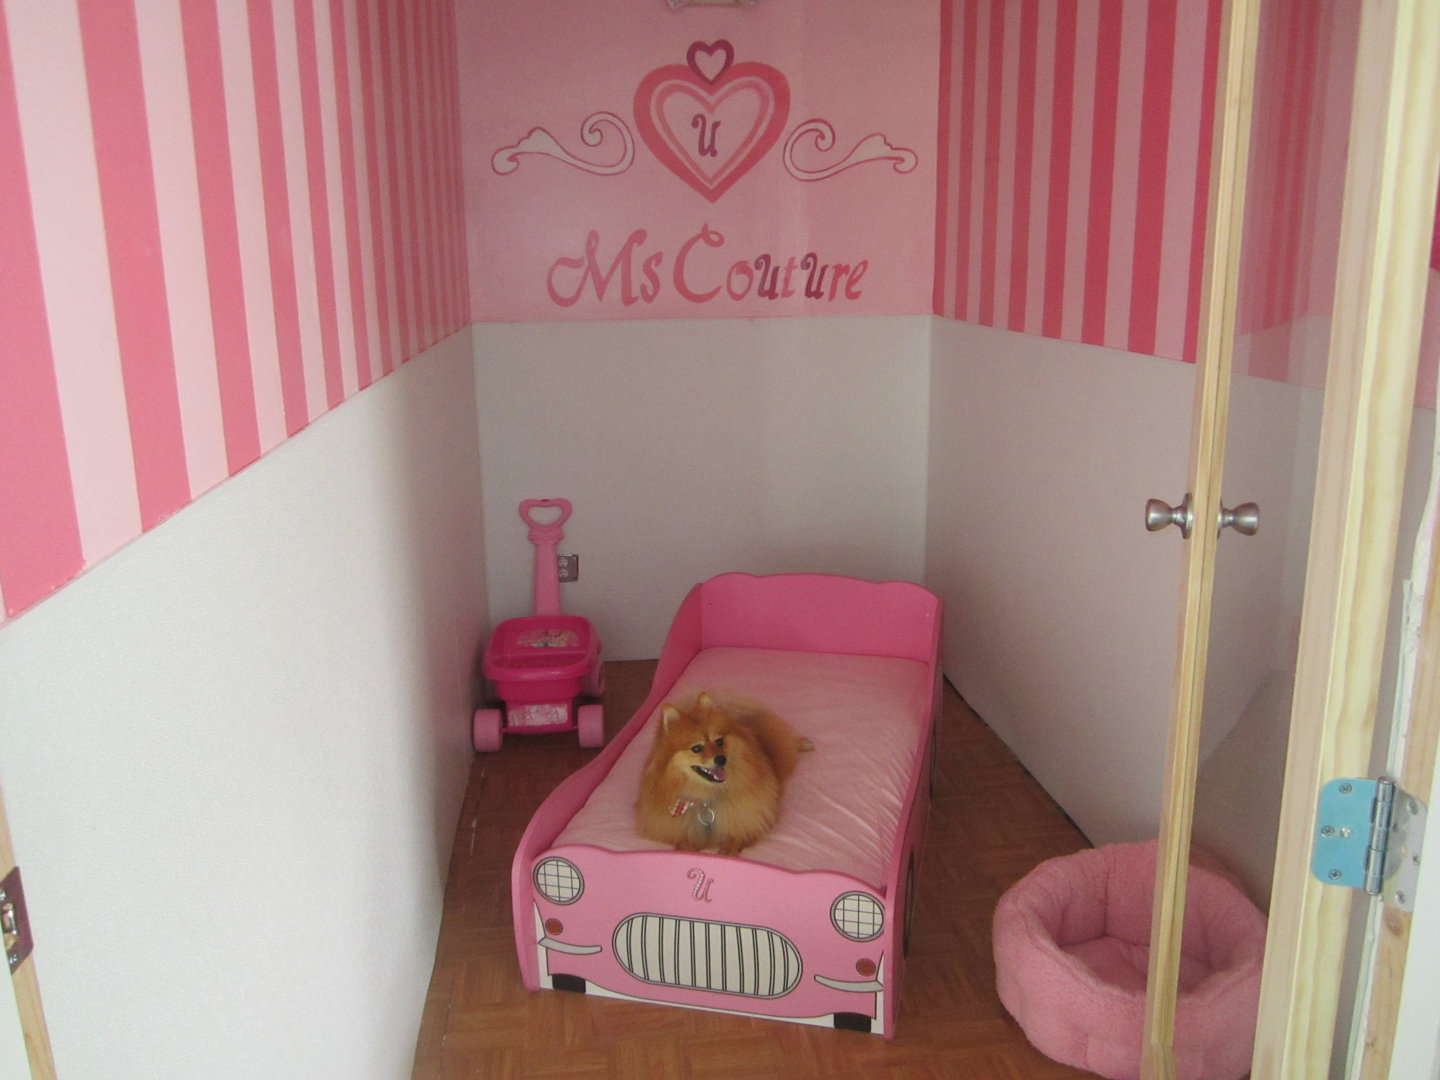 Ms Couture Suite